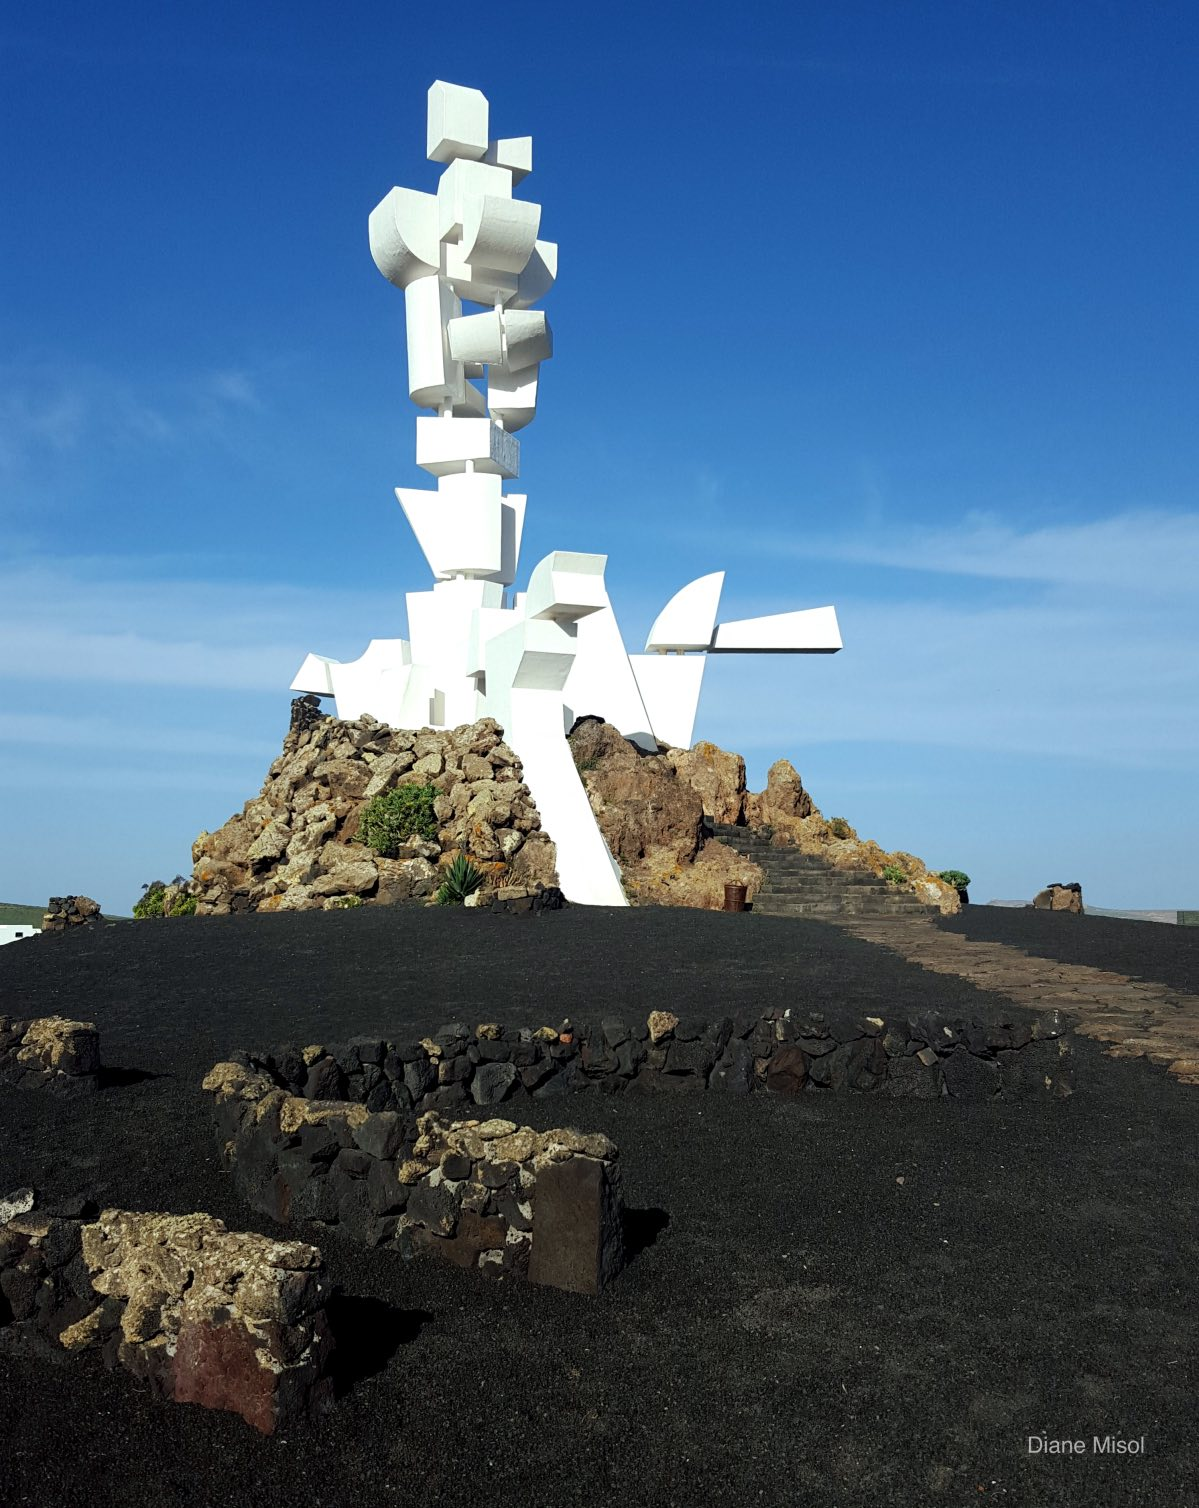 Art: The Peasant by César Manrique, Lanzarote Spain